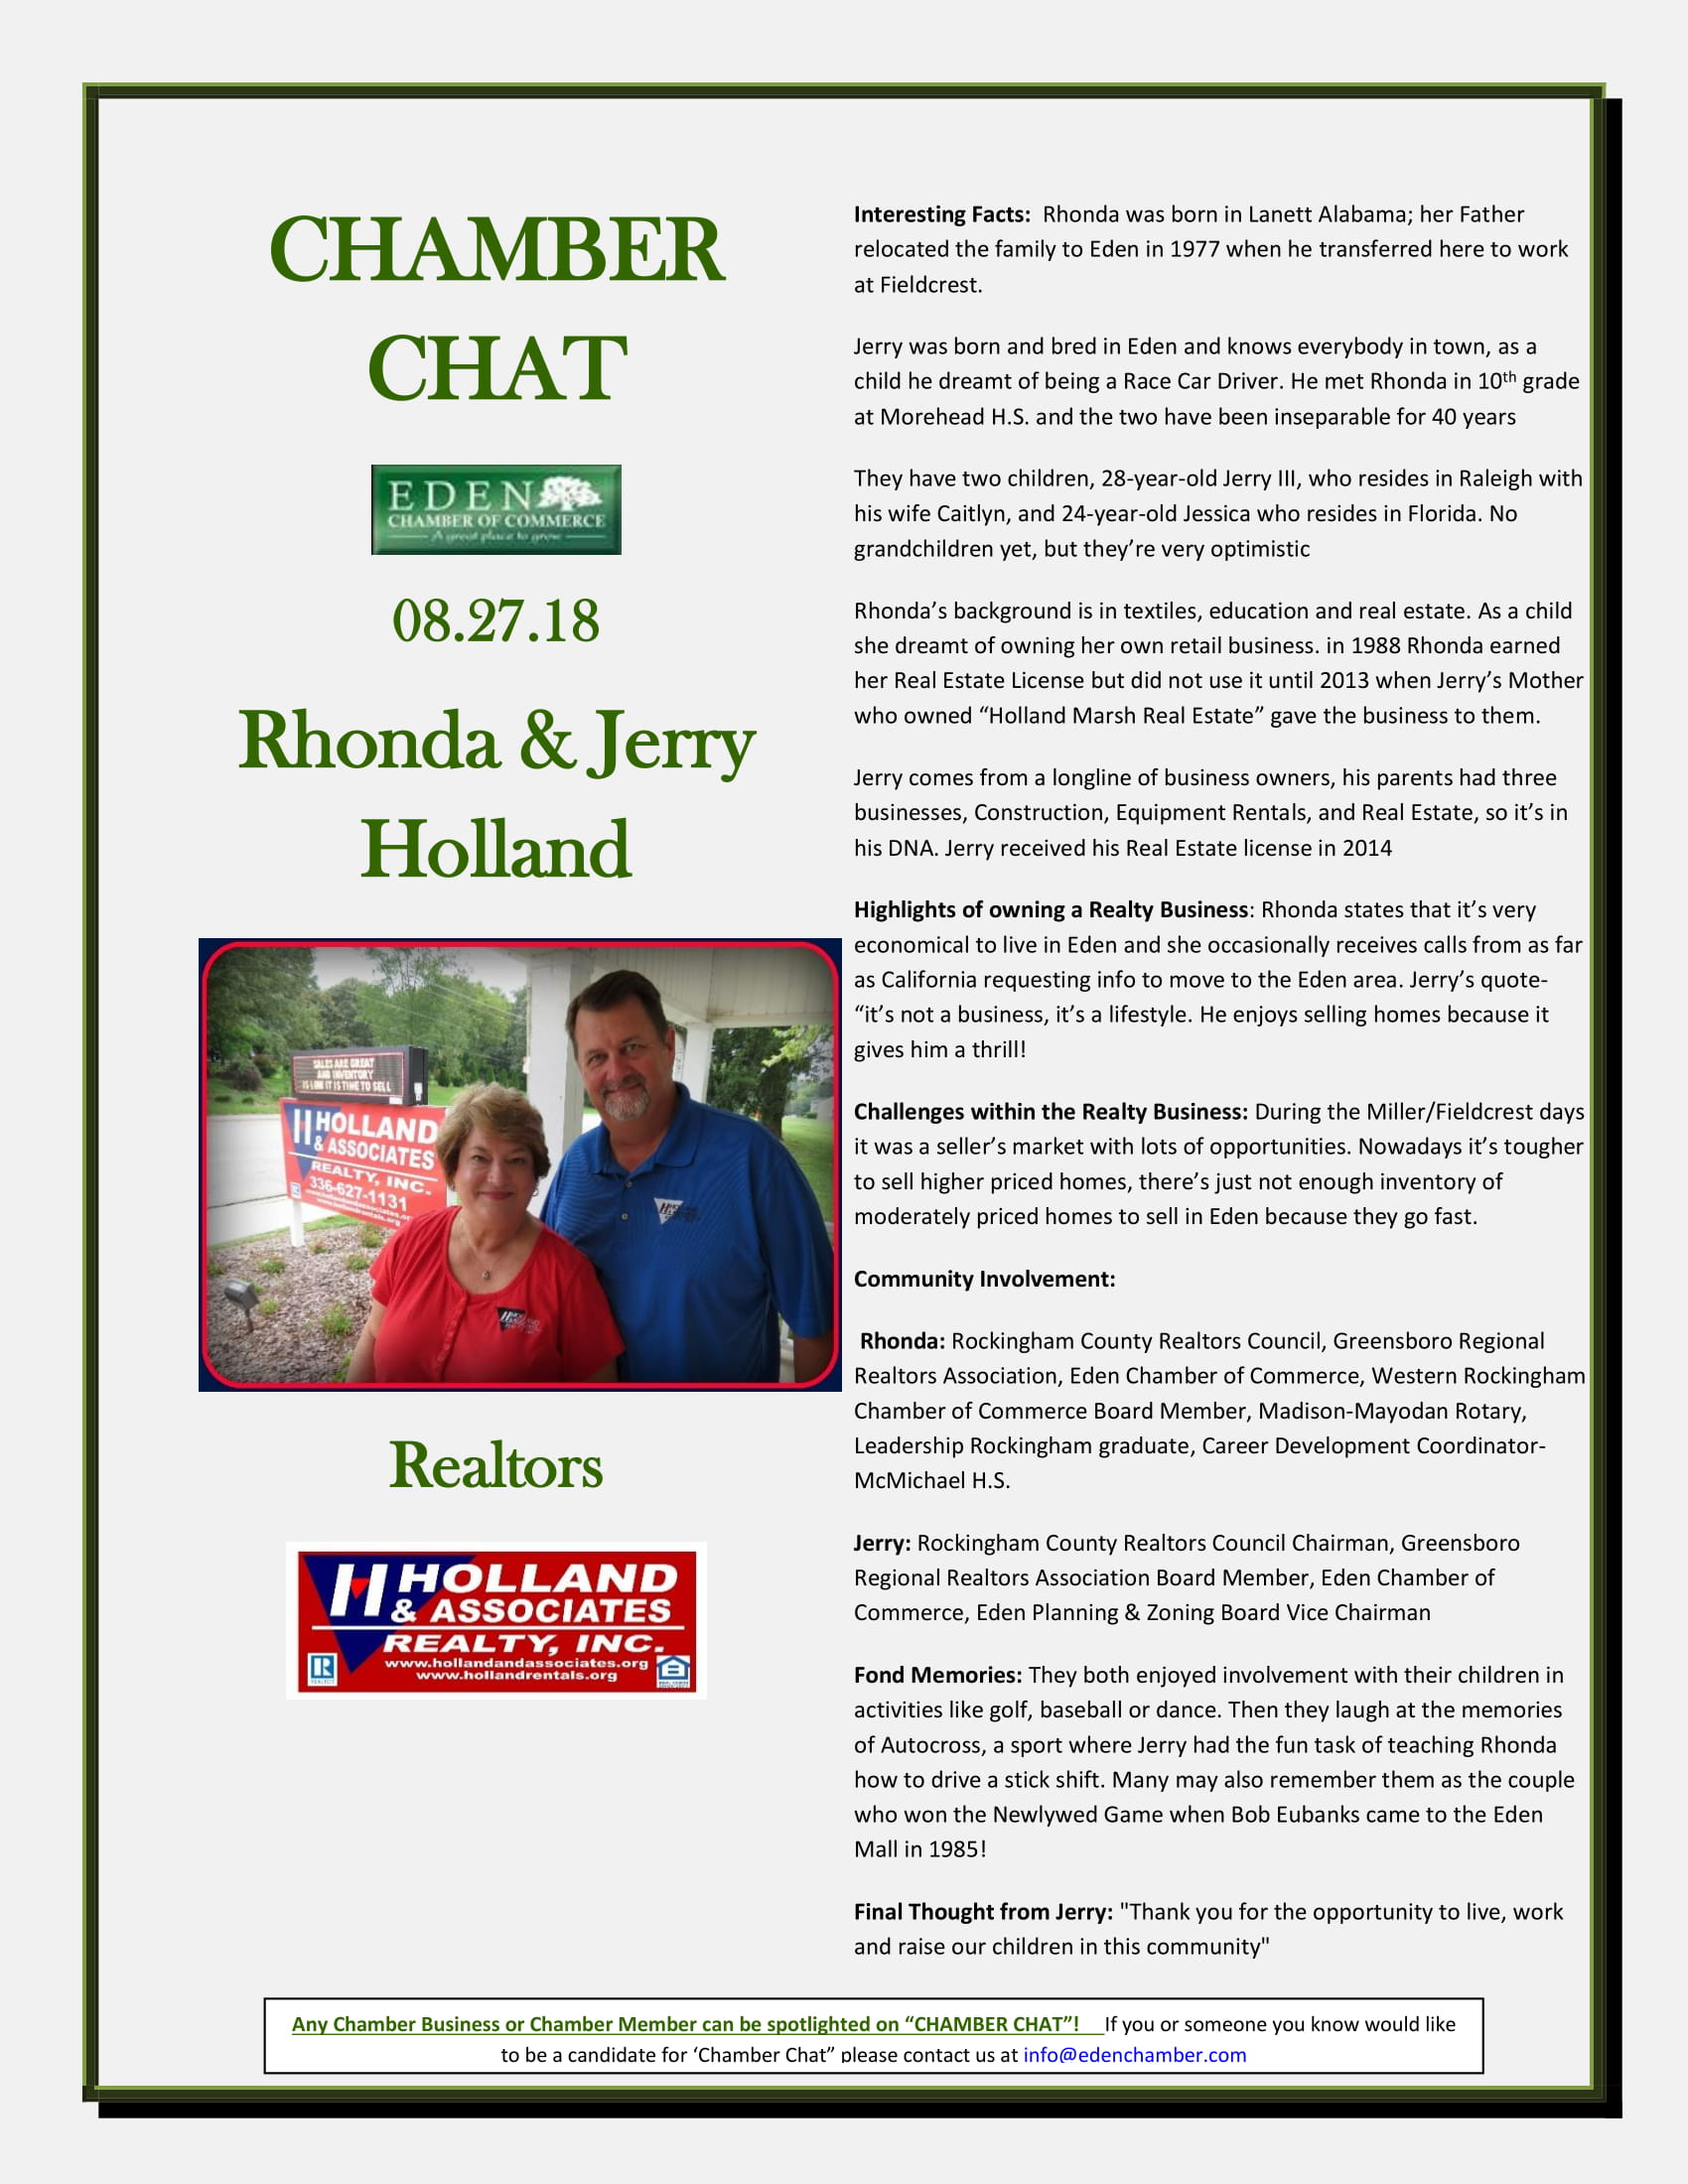 CHAMBER-CHAT--Holland-Realty--Rhonda-and-Jerry-08.27.18-1